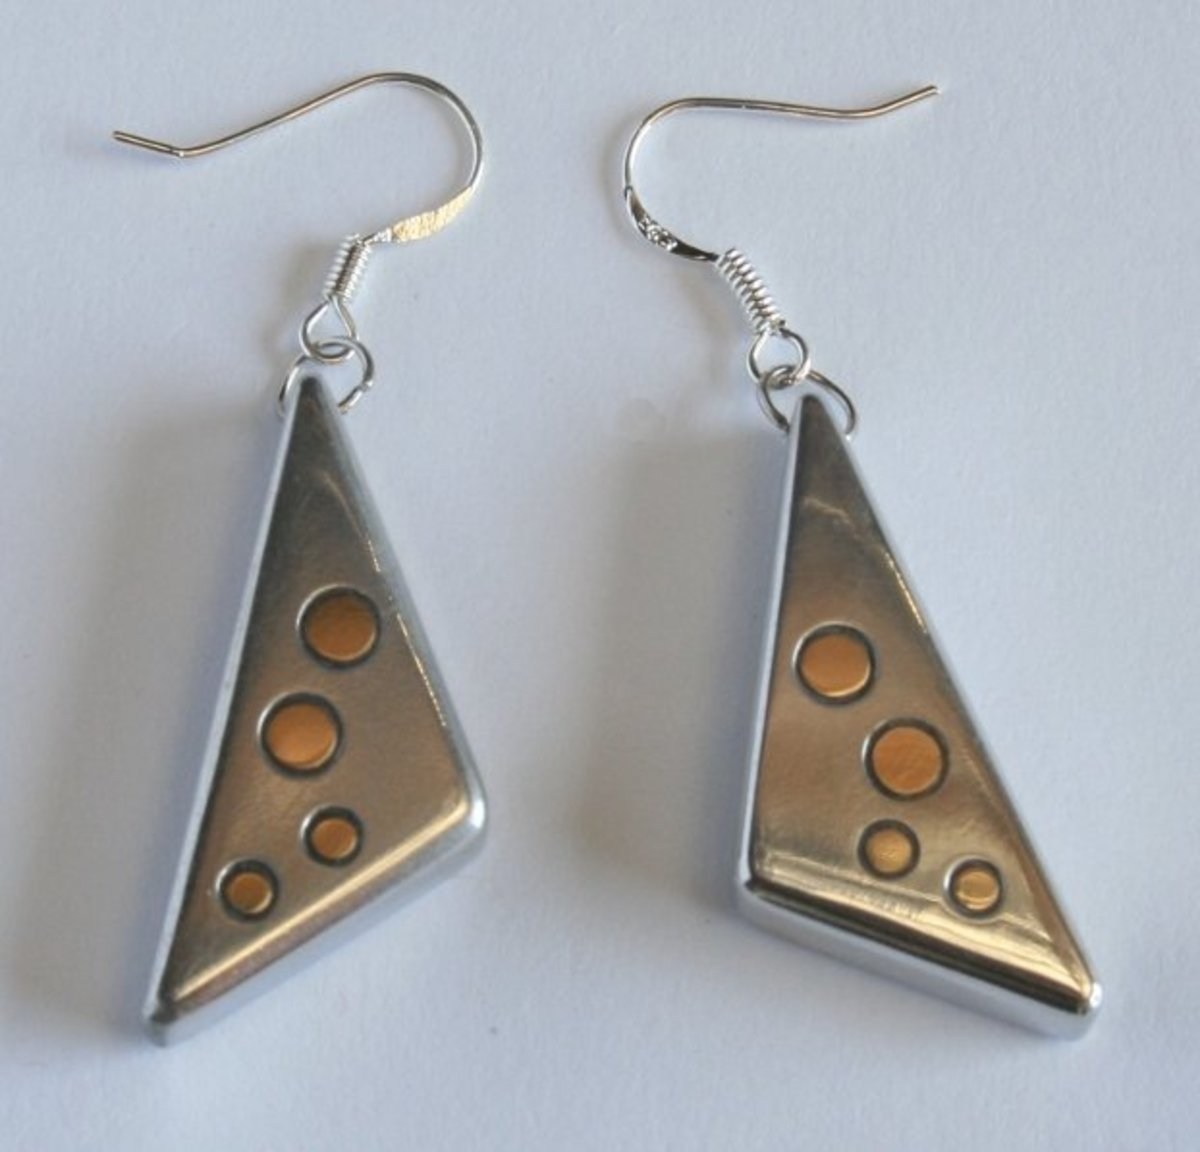 How To Make Beautiful Jewellery Or Hand Crafted Items From Aluminium